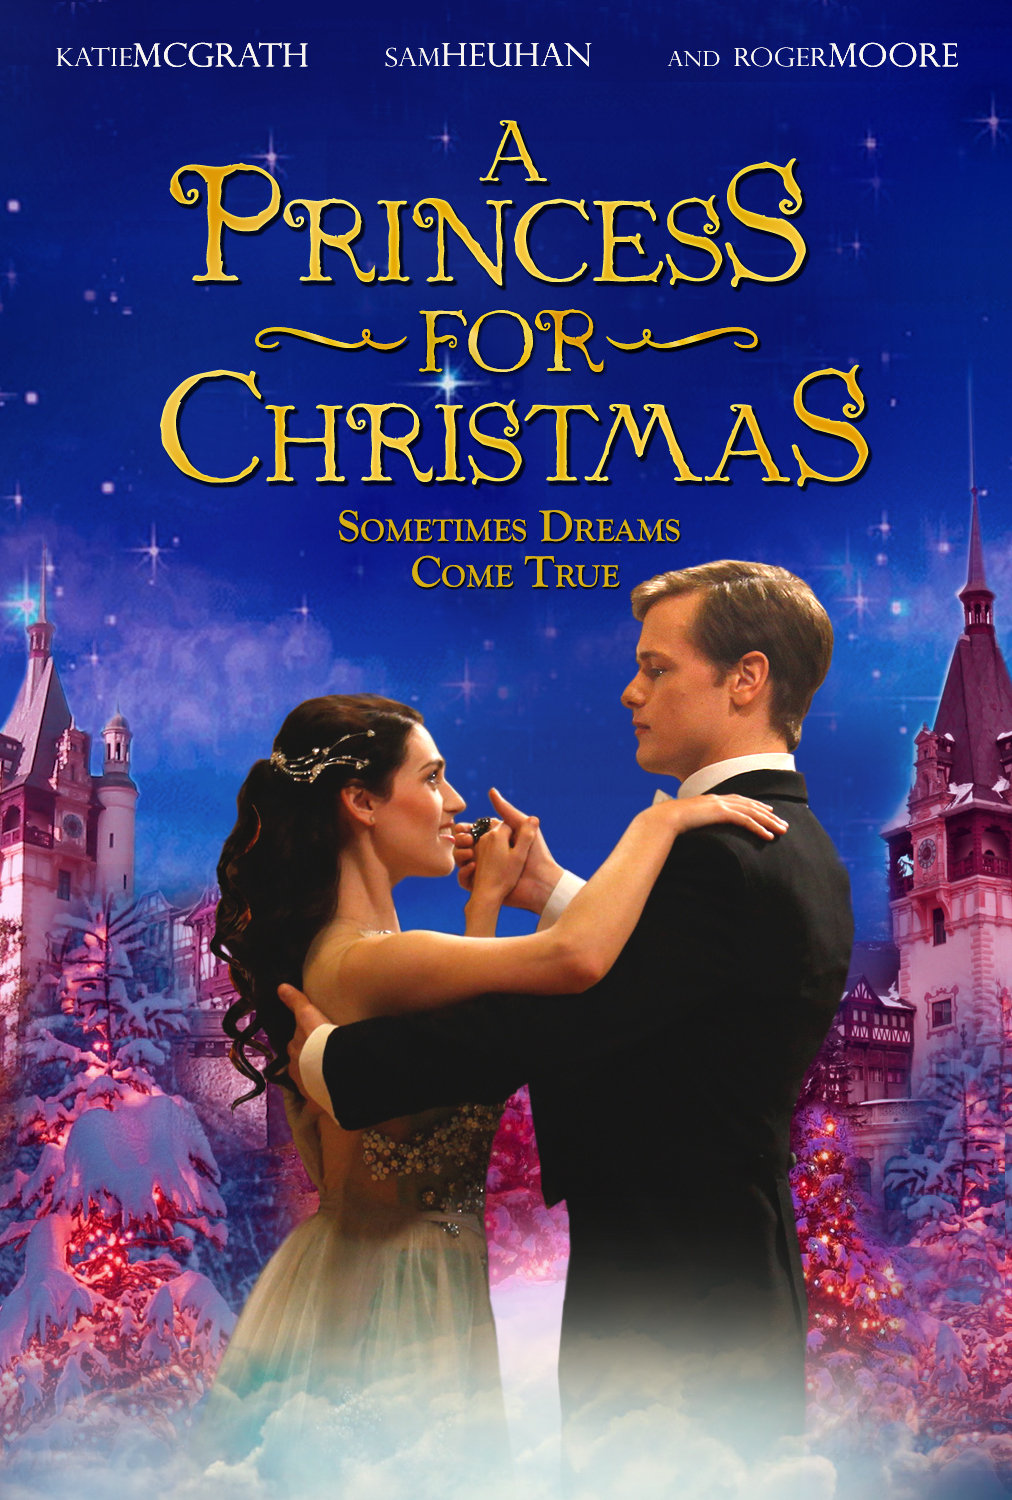 The main actors The Princess at Christmas, the plot of the film